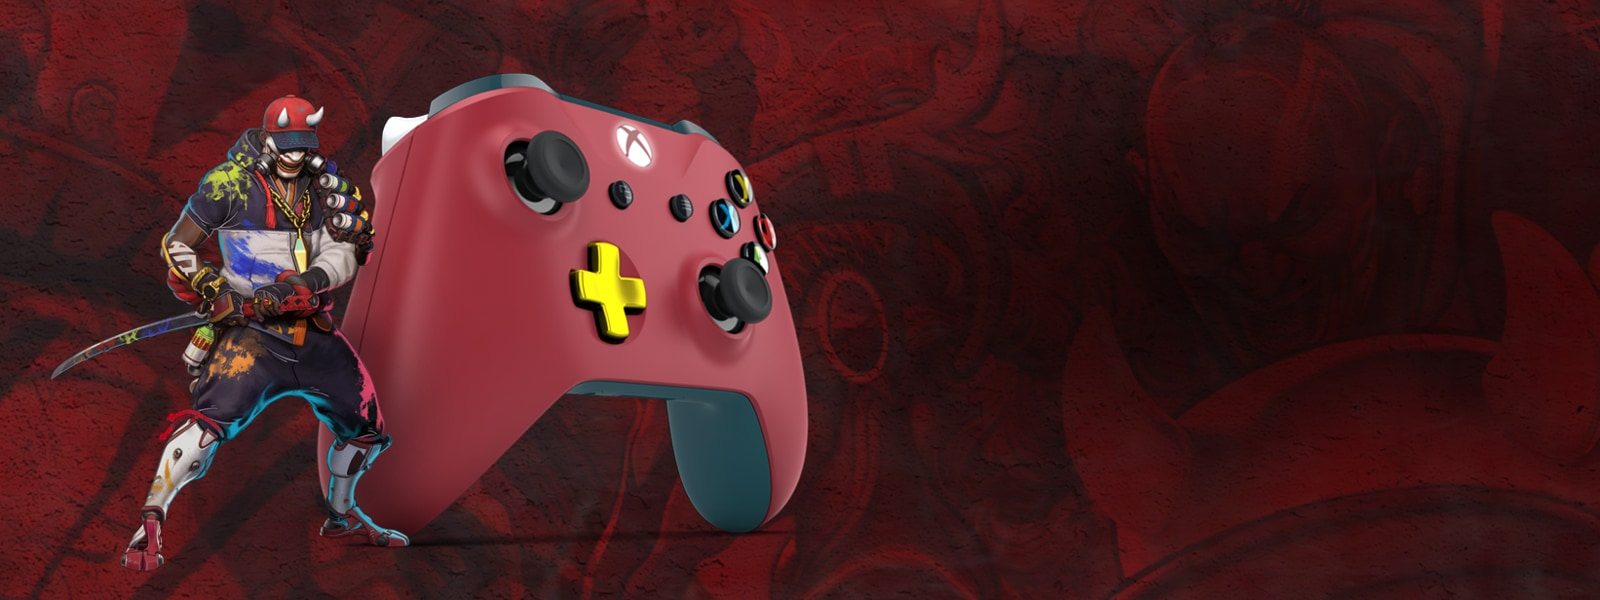 Daemon from Bleeding Edge next to a red xbox one controller with a gold d pad